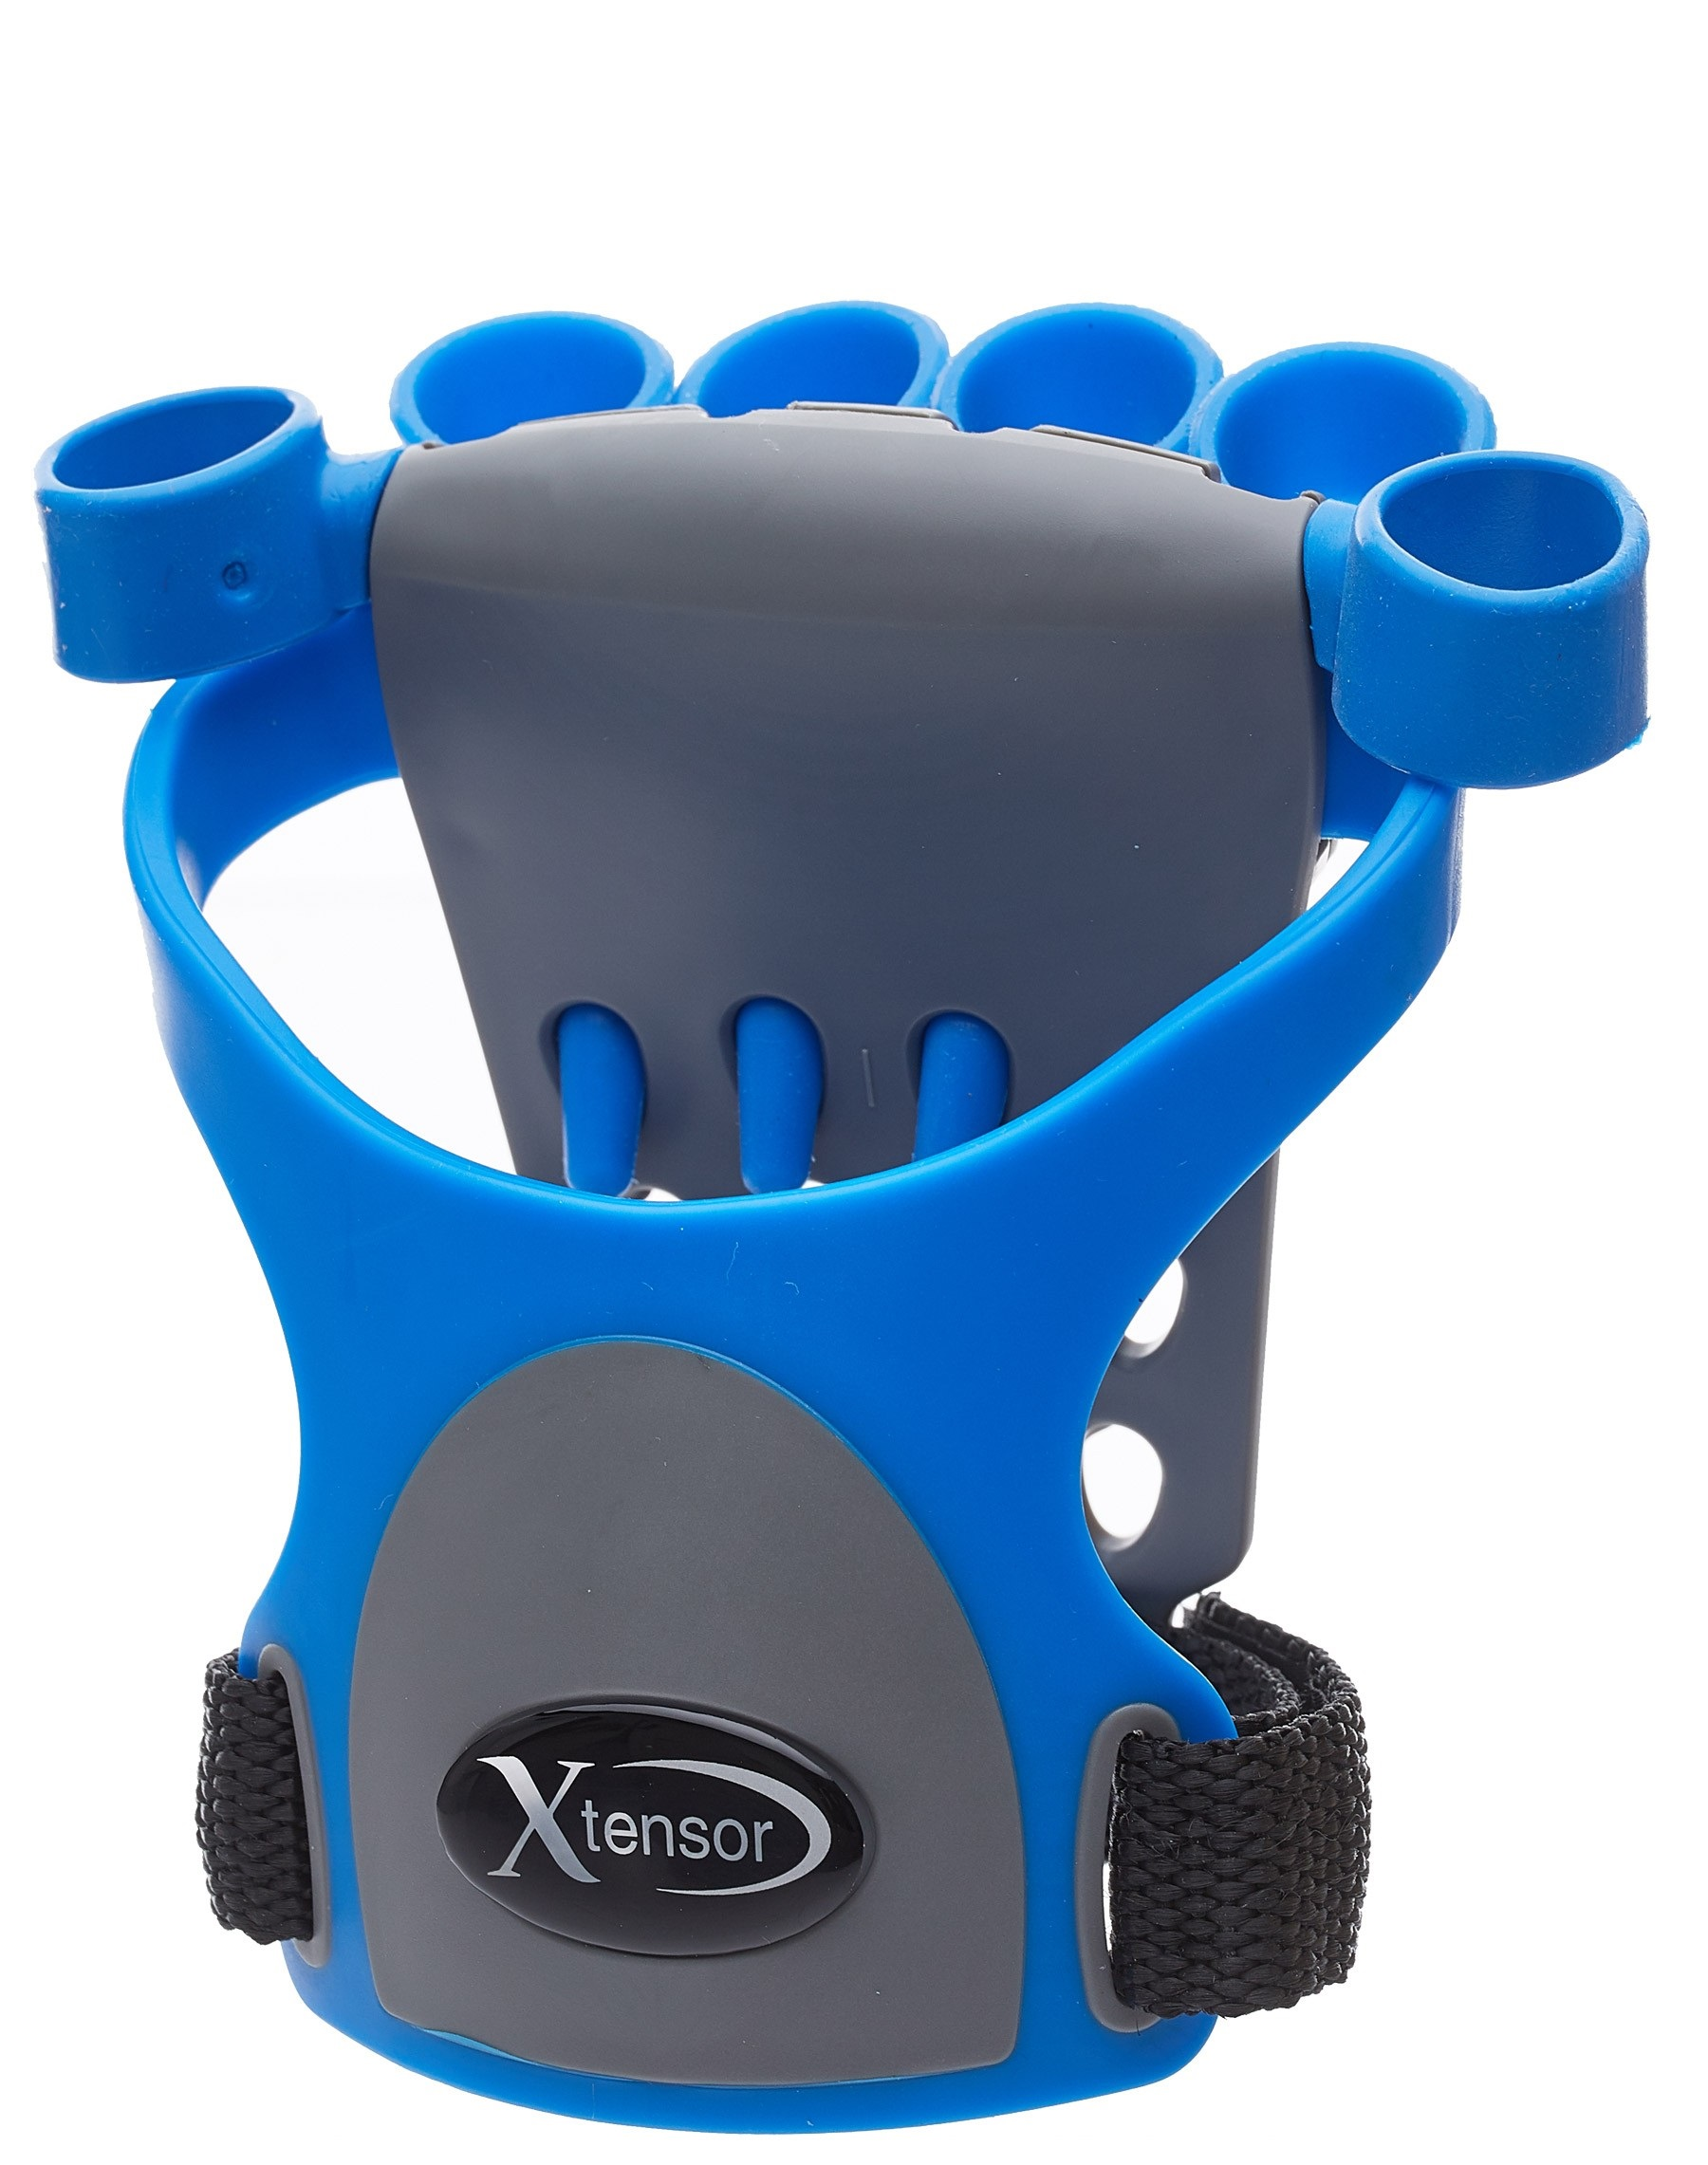 Clinically Fit Hand Exerciser